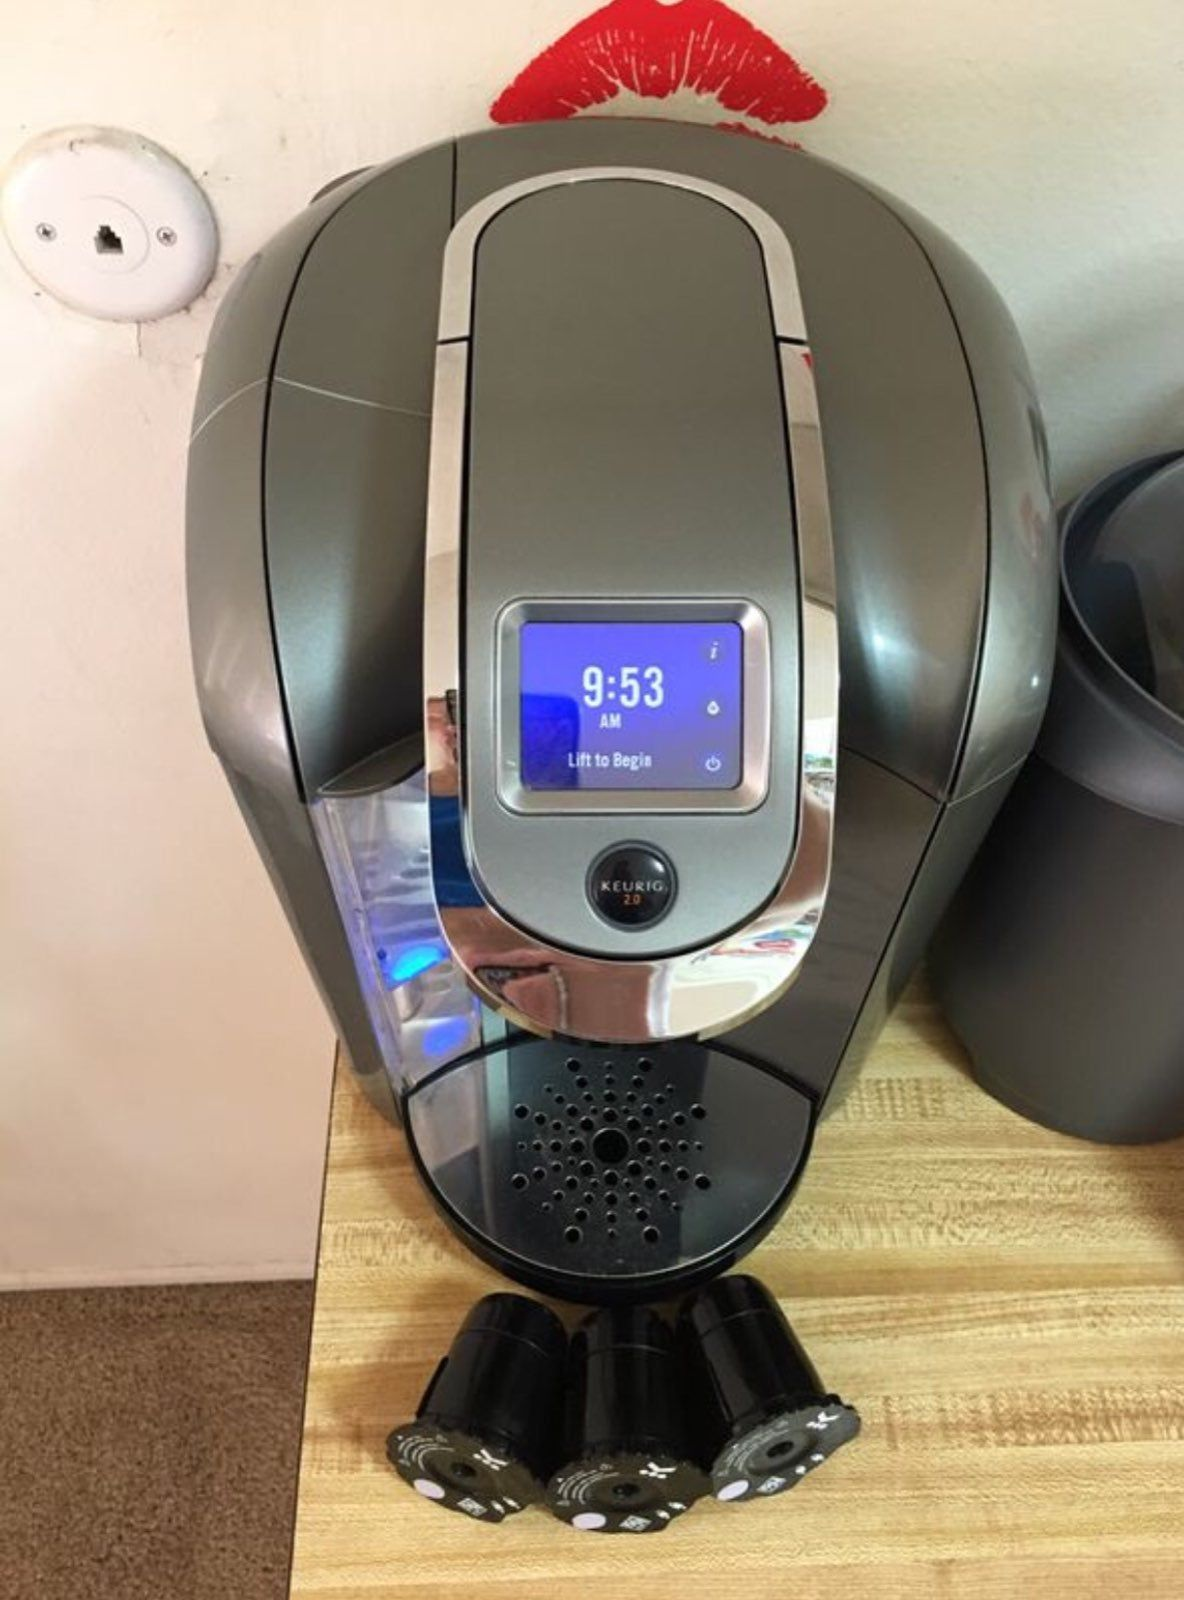 I'm selling KEURIG K500 Coffee Maker 2.0 Platinum works